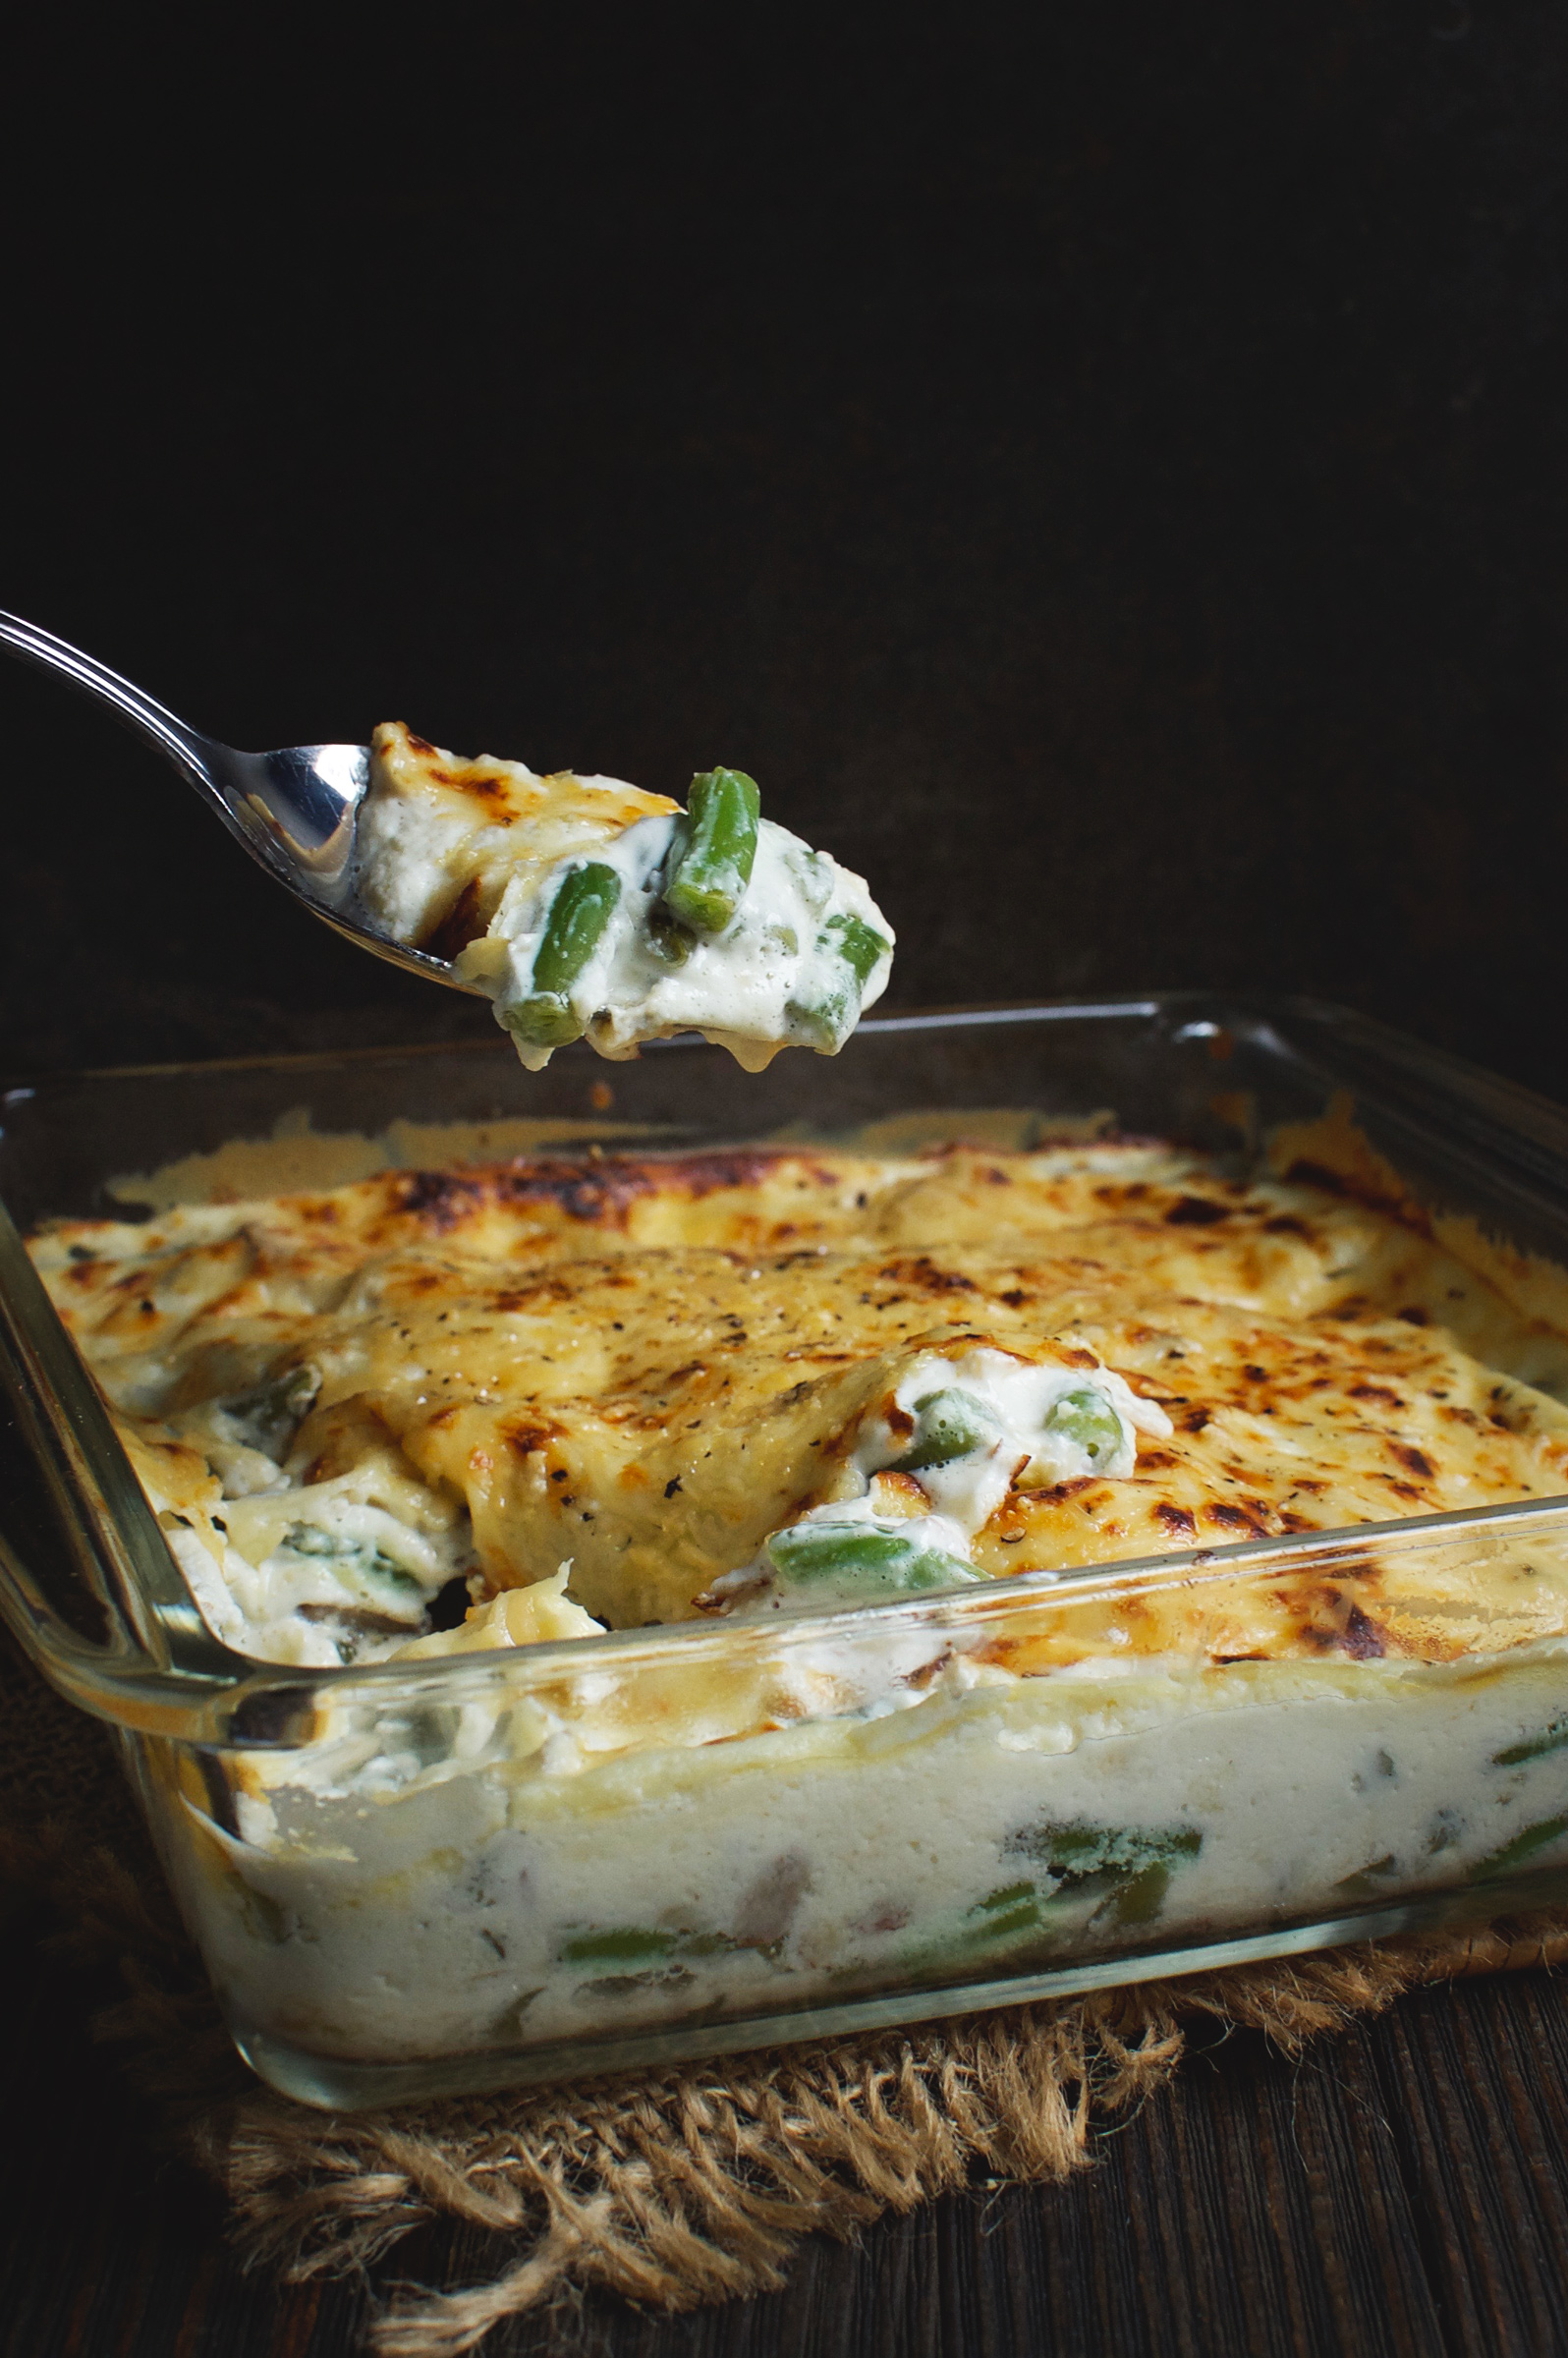 Low-Carb Green Bean and Mushroom Casserole recipe from Simply So Healthy